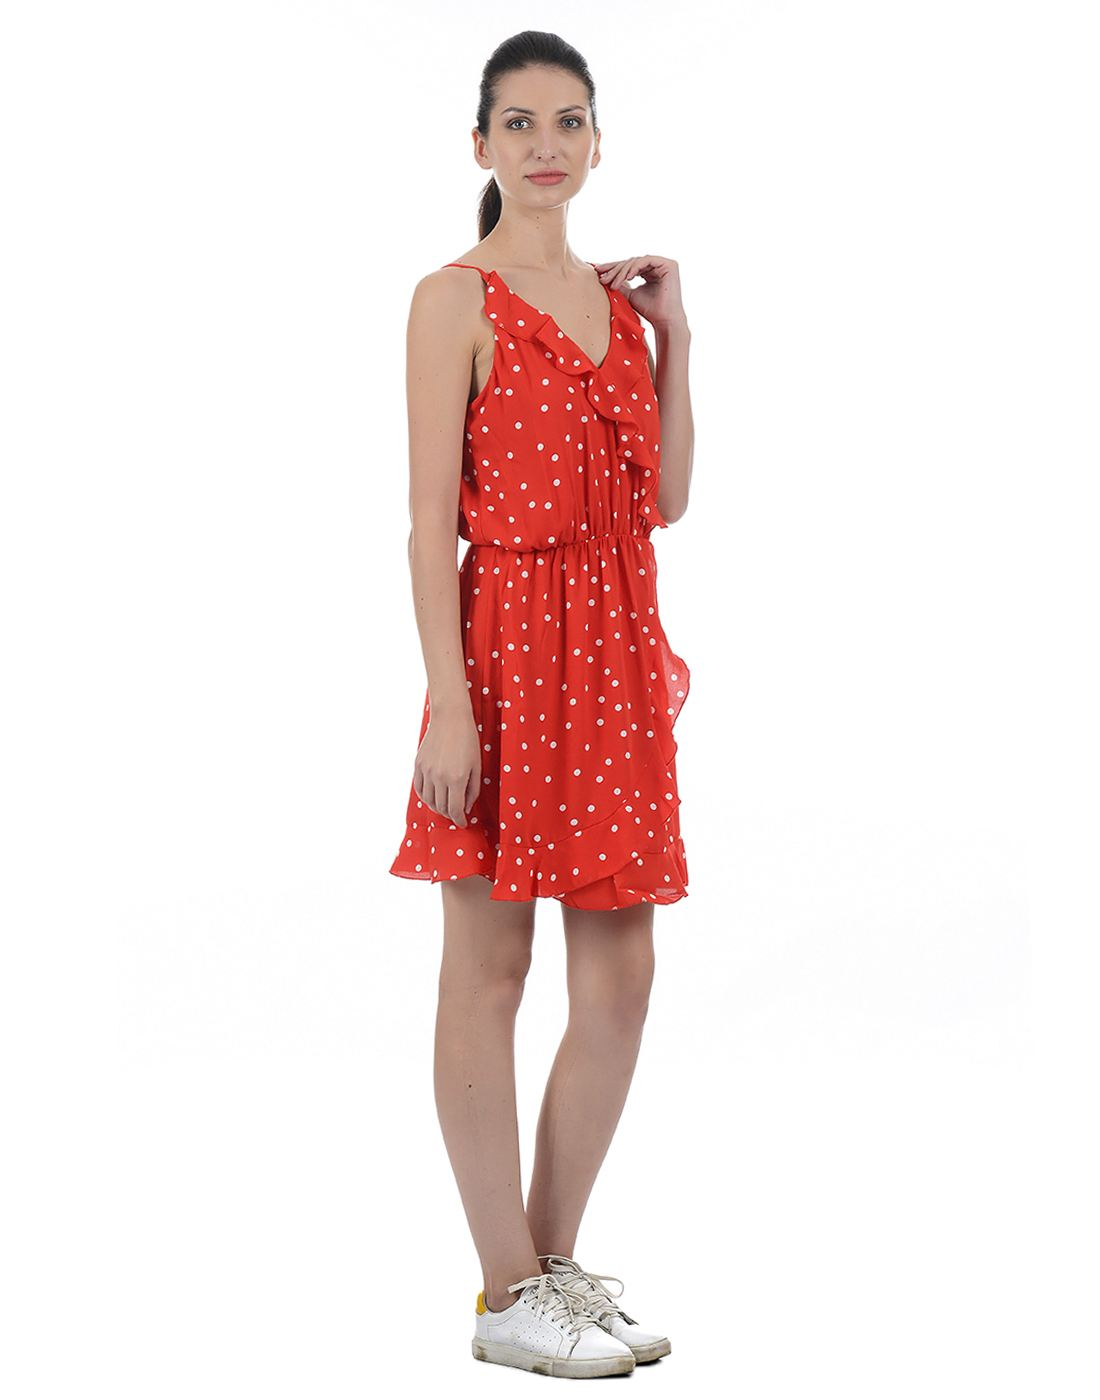 Only Women Casual Red Dress